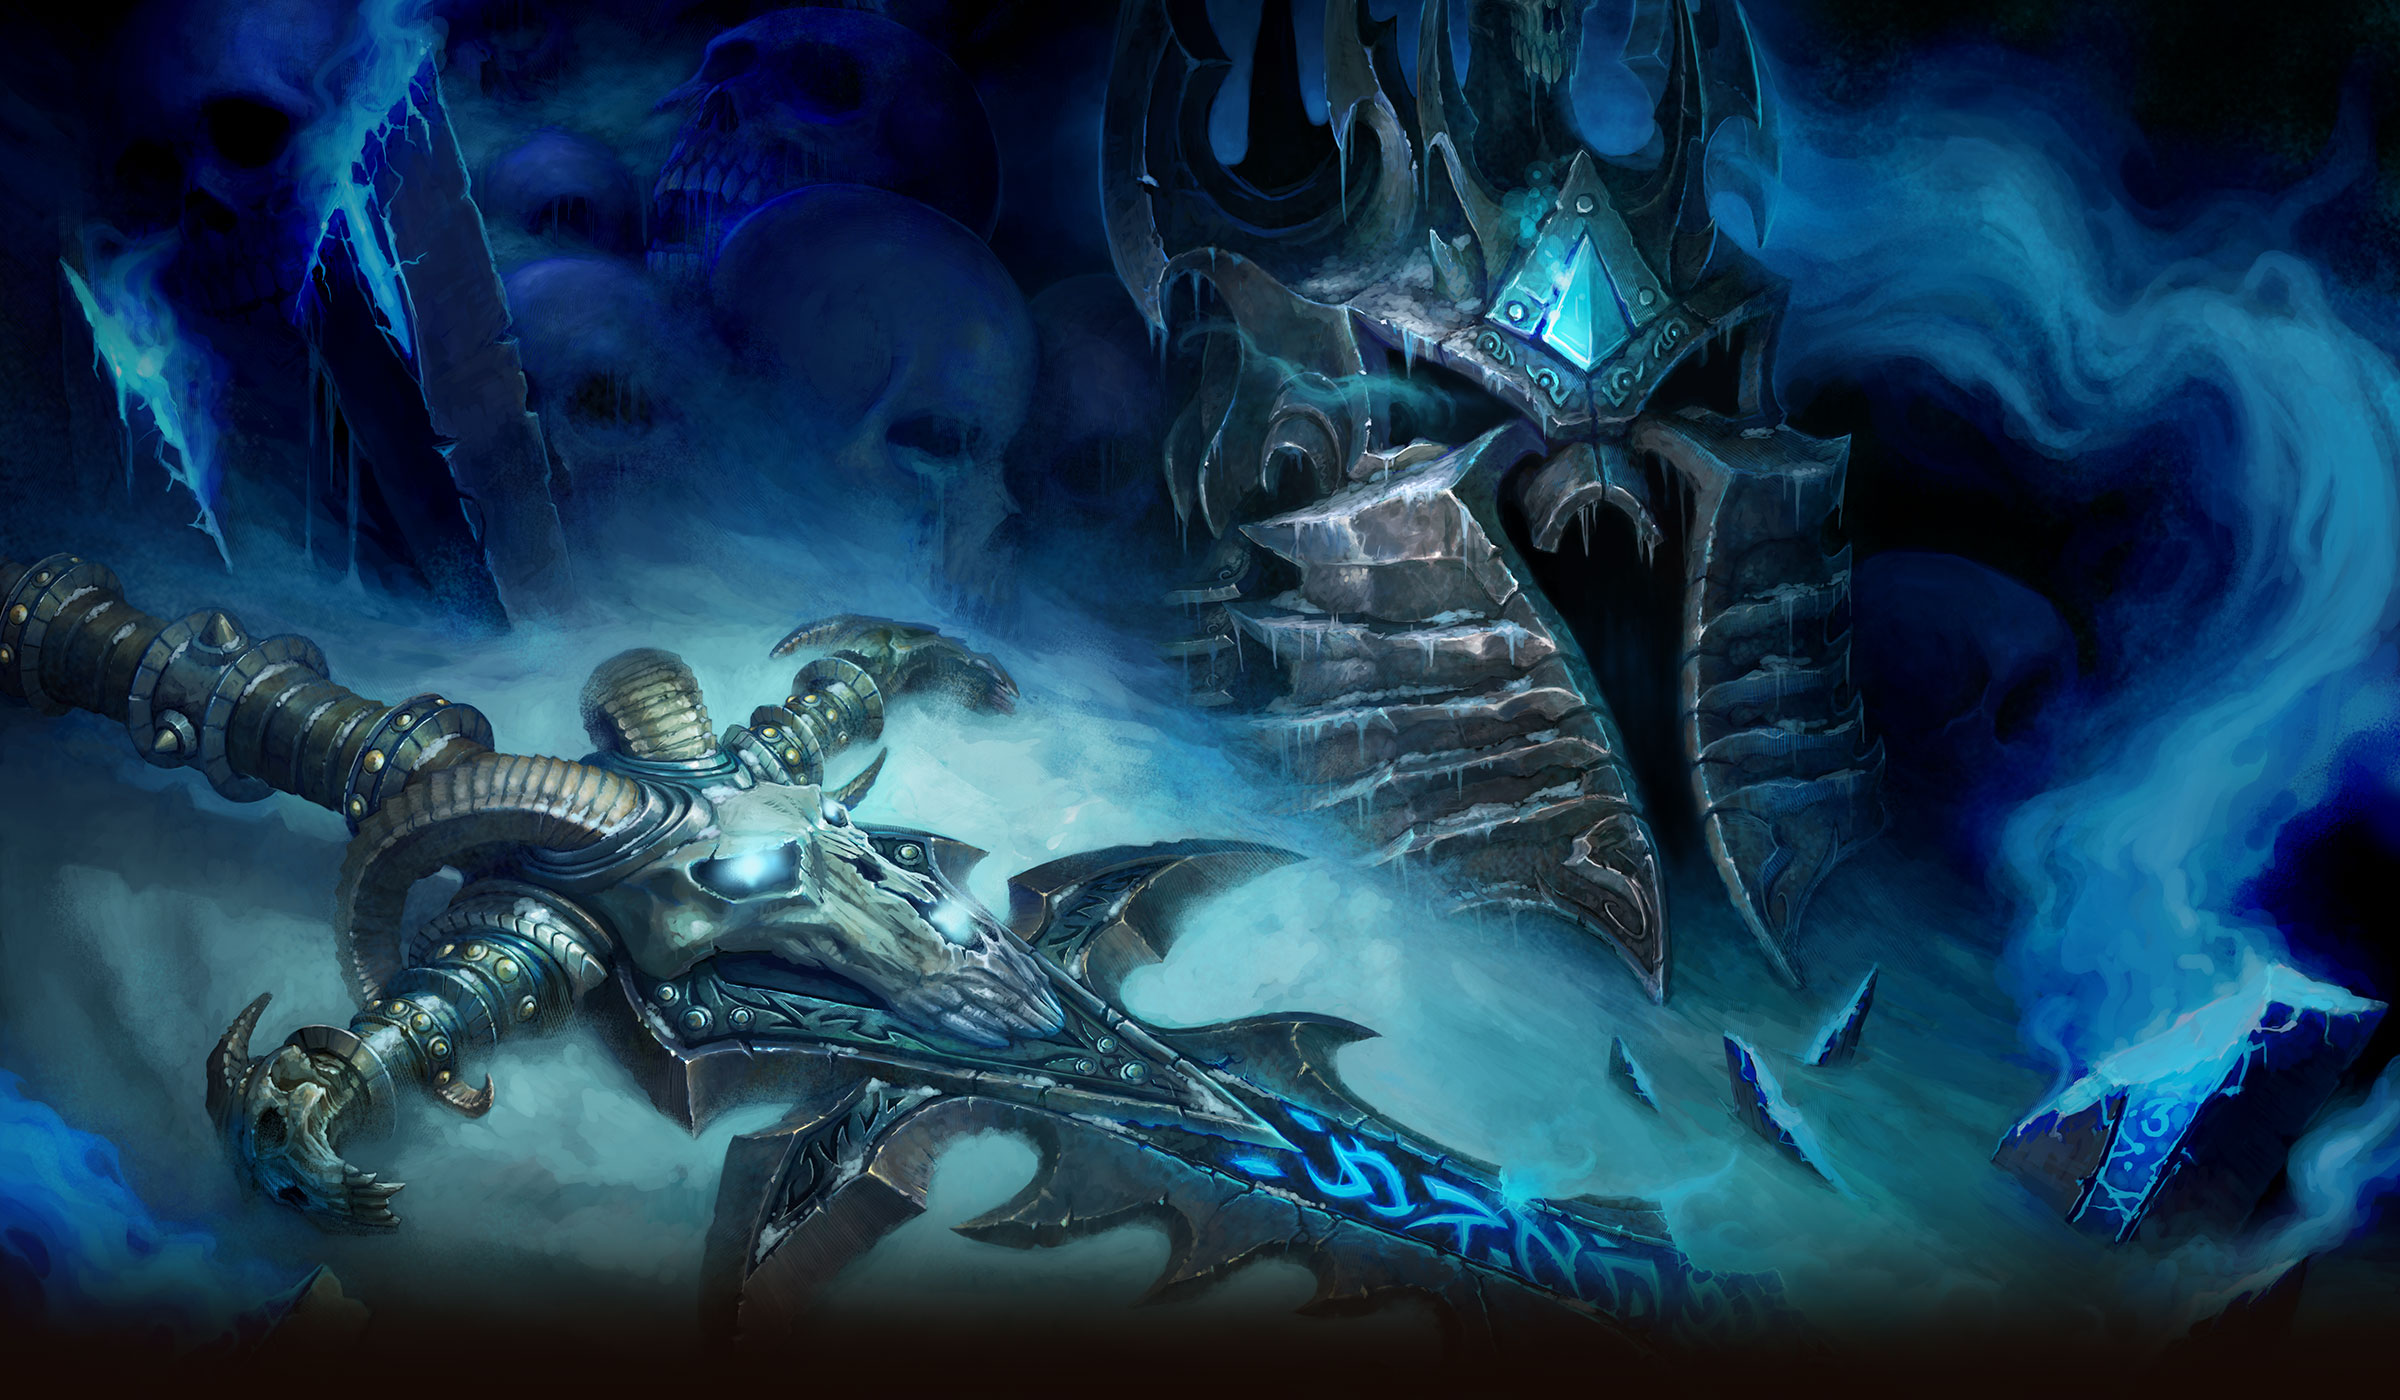 Fall of The lich King | World of WarCraft, WarCraft, wow, azeroth, lore